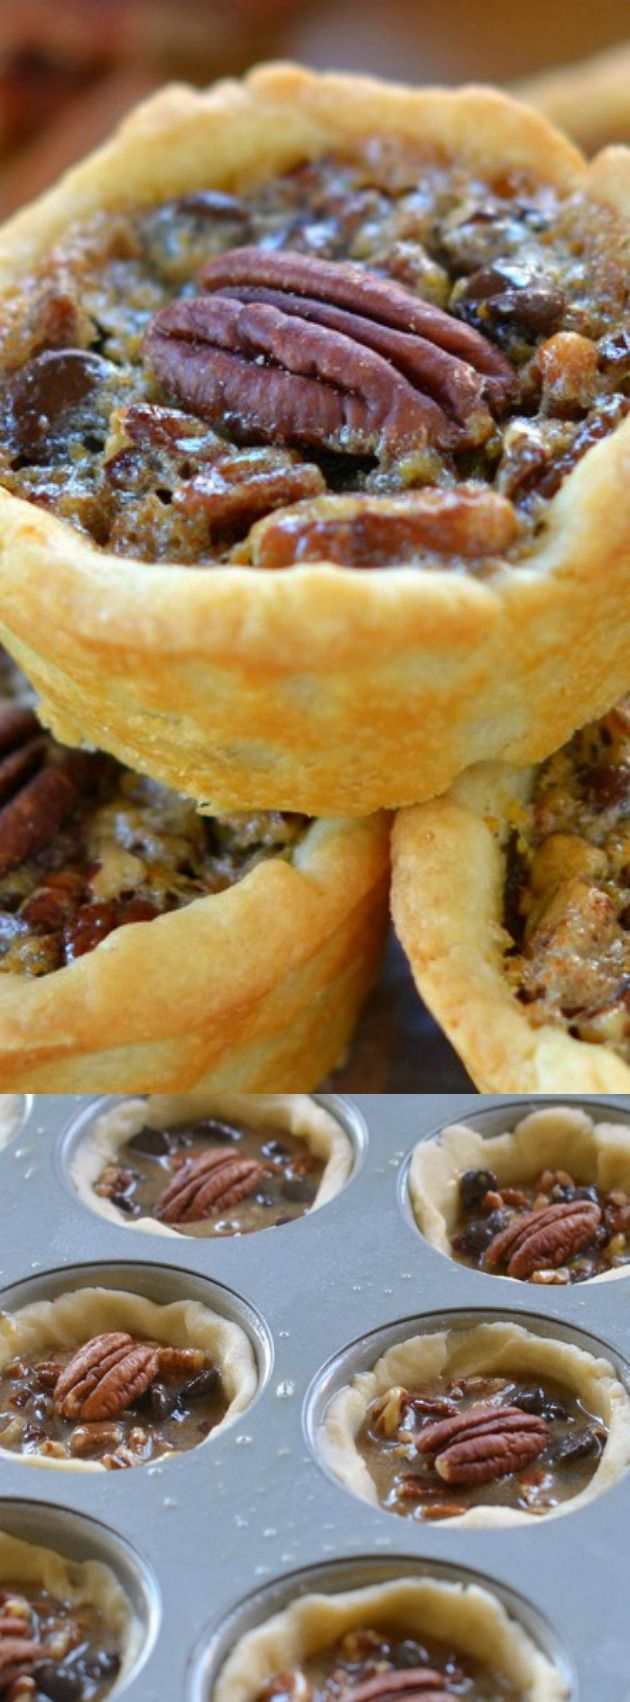 These Mini Chocolate Pecan Pies from Mom on Timeout make the perfect mini dessert for the holiday season. They have sweet chocolate morsels and delicious pecans for a treat that everyone will love — in bite size form! The recipe calls for simple ingredients and they are ready from start to finish in just 40 minutes.